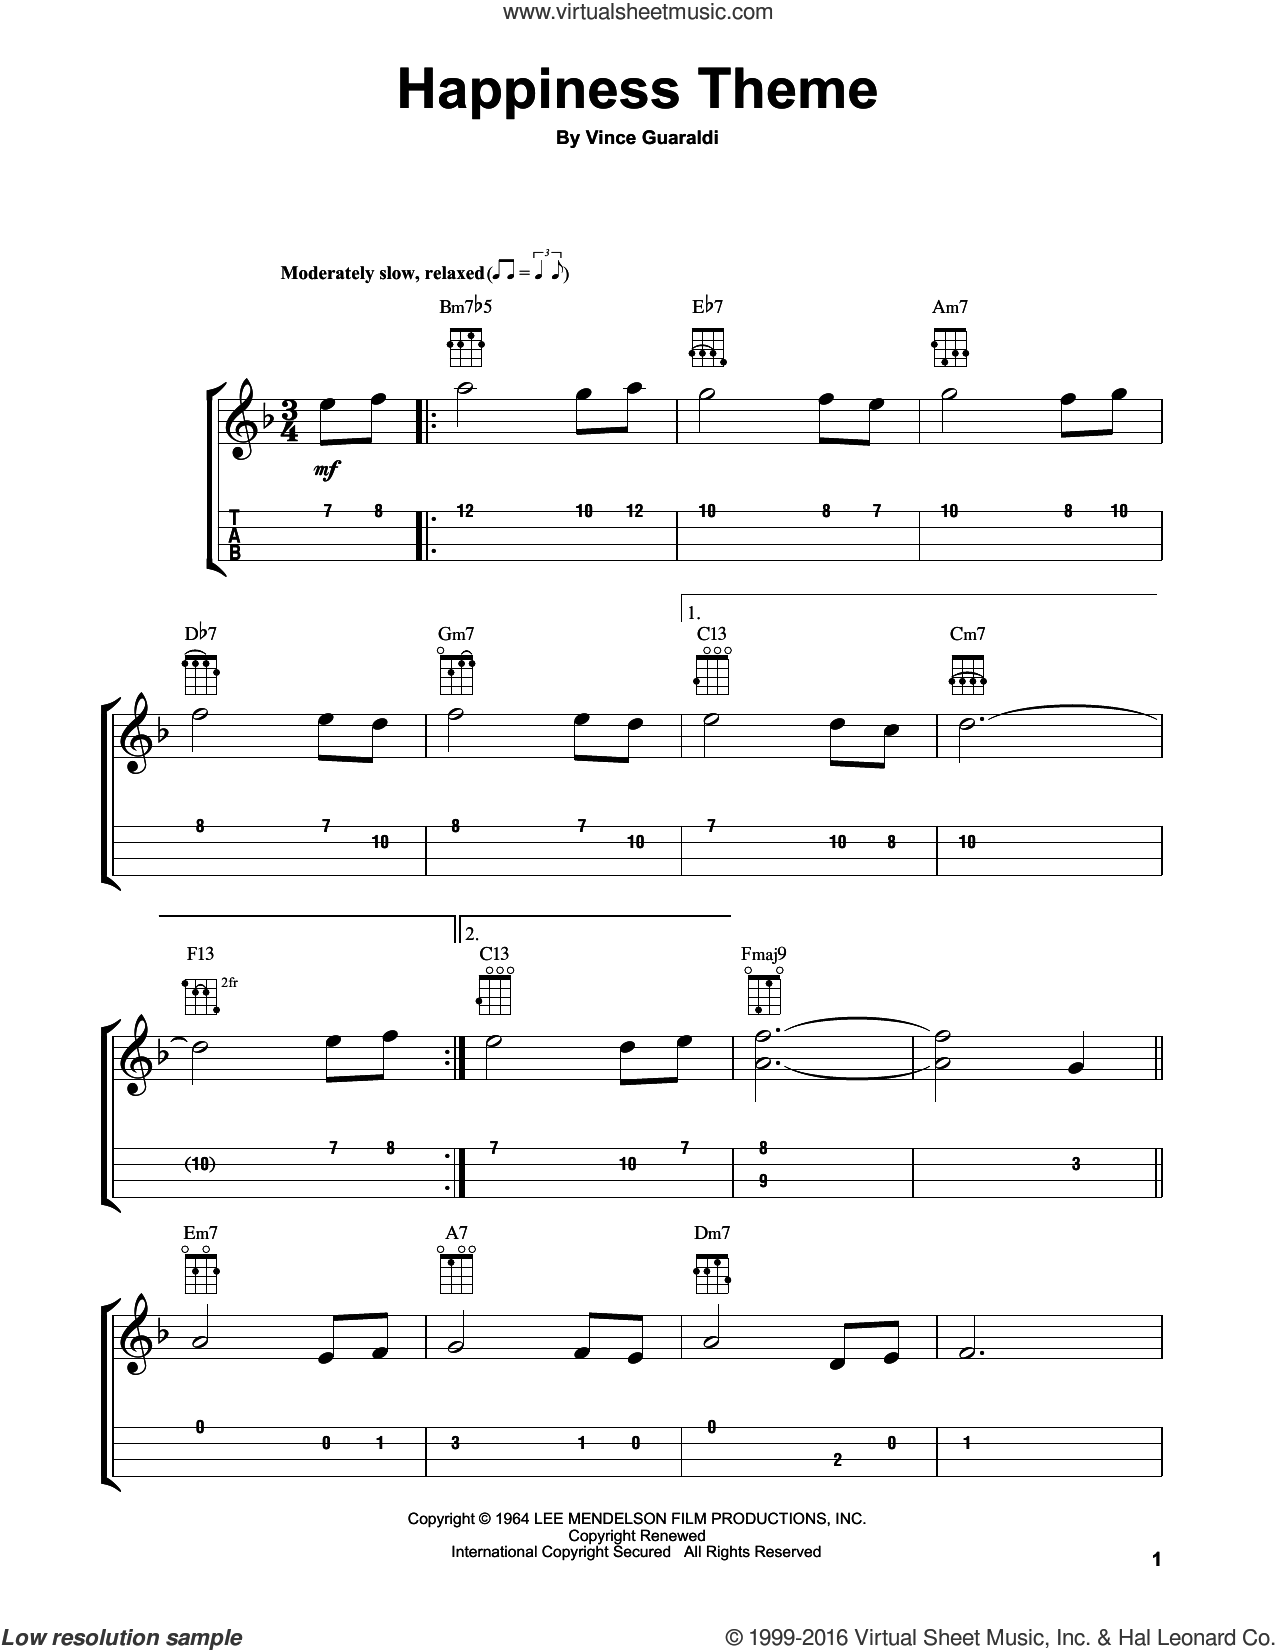 Happiness Theme sheet music for ukulele by Vince Guaraldi. Score Image Preview.